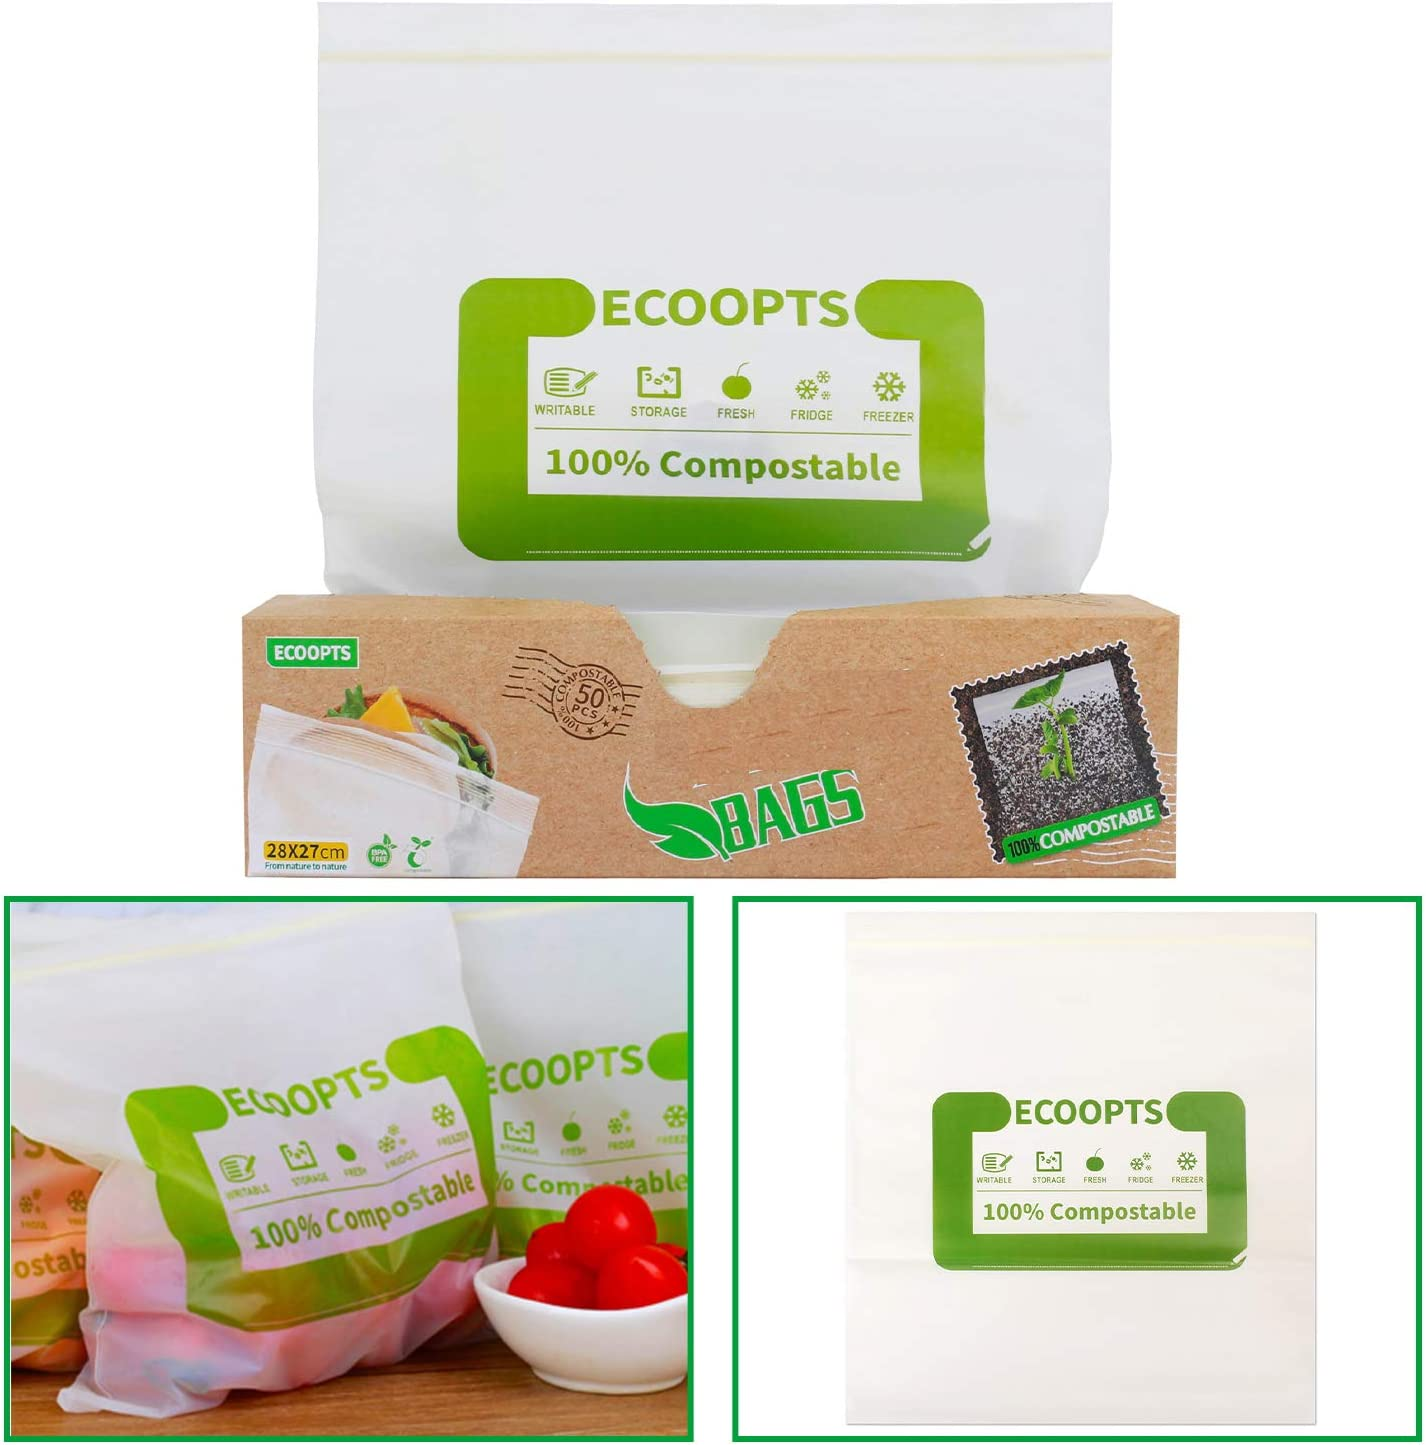 50 Count ECOOPTS 100% Compostable Freezer Bags Reusable Food Storage Sandwich Bags Large Sizer For Food Organization and Storage - (11×10.7 IN/Count)